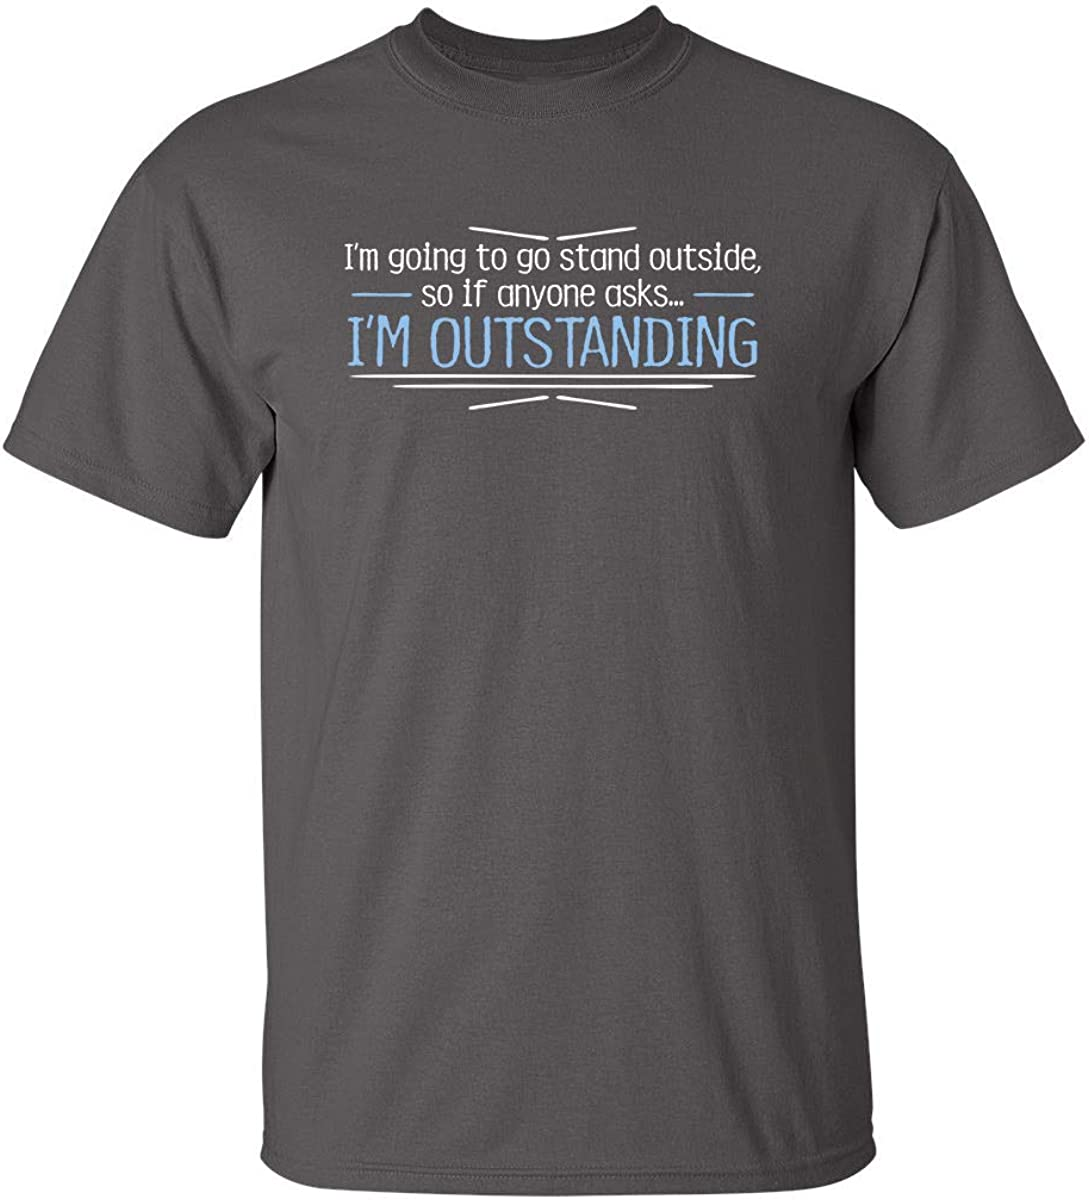 I'm Outstanding Graphic Novelty Sarcastic Funny T Shirt